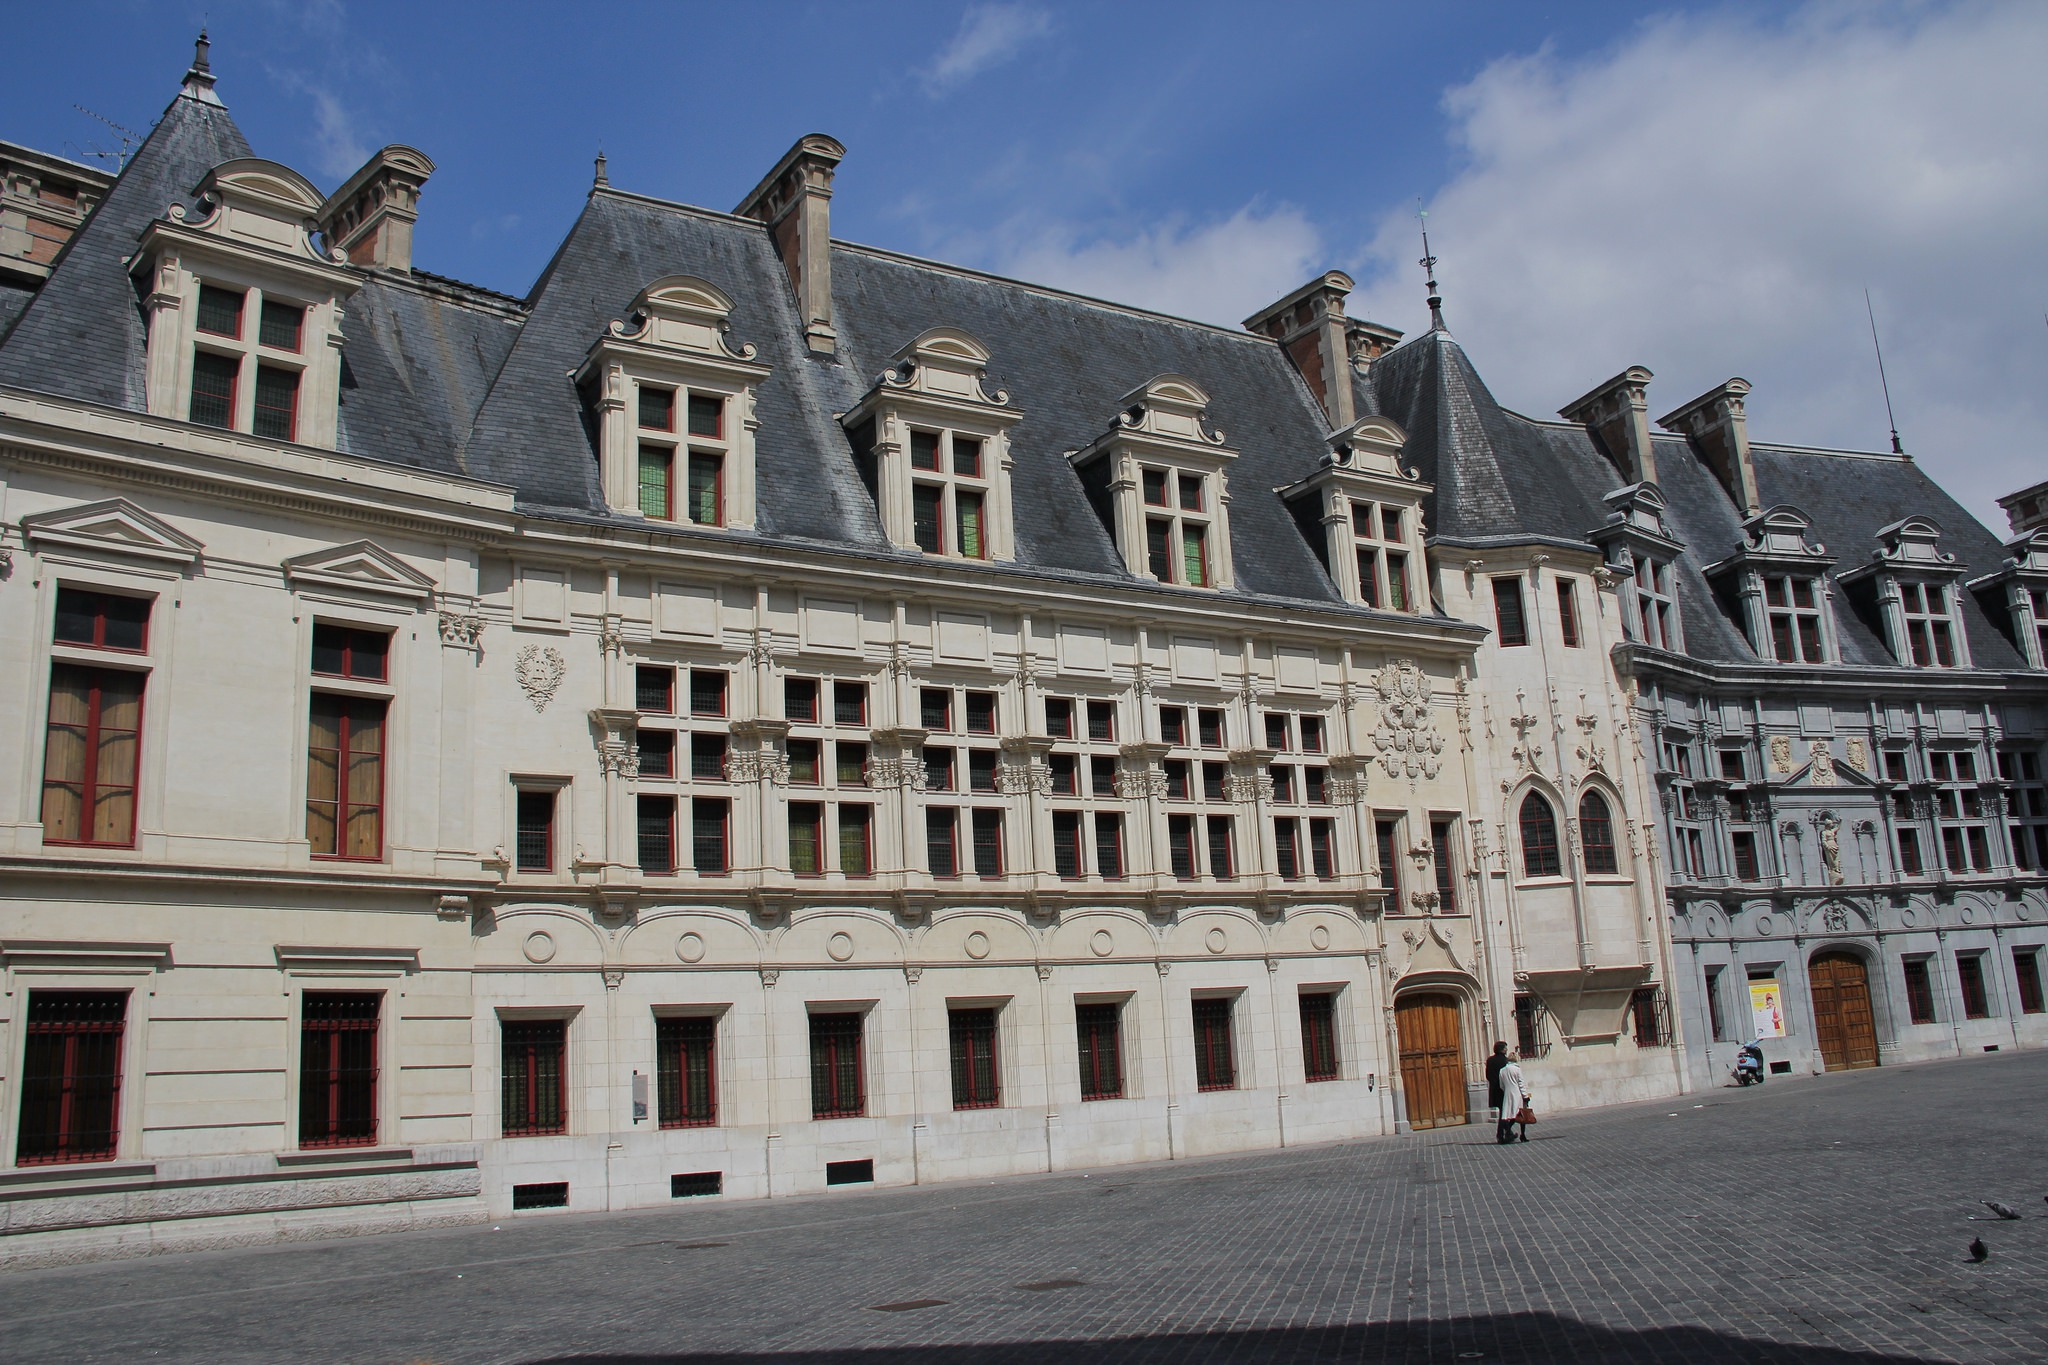 Palace of the Parliament of Dauphine